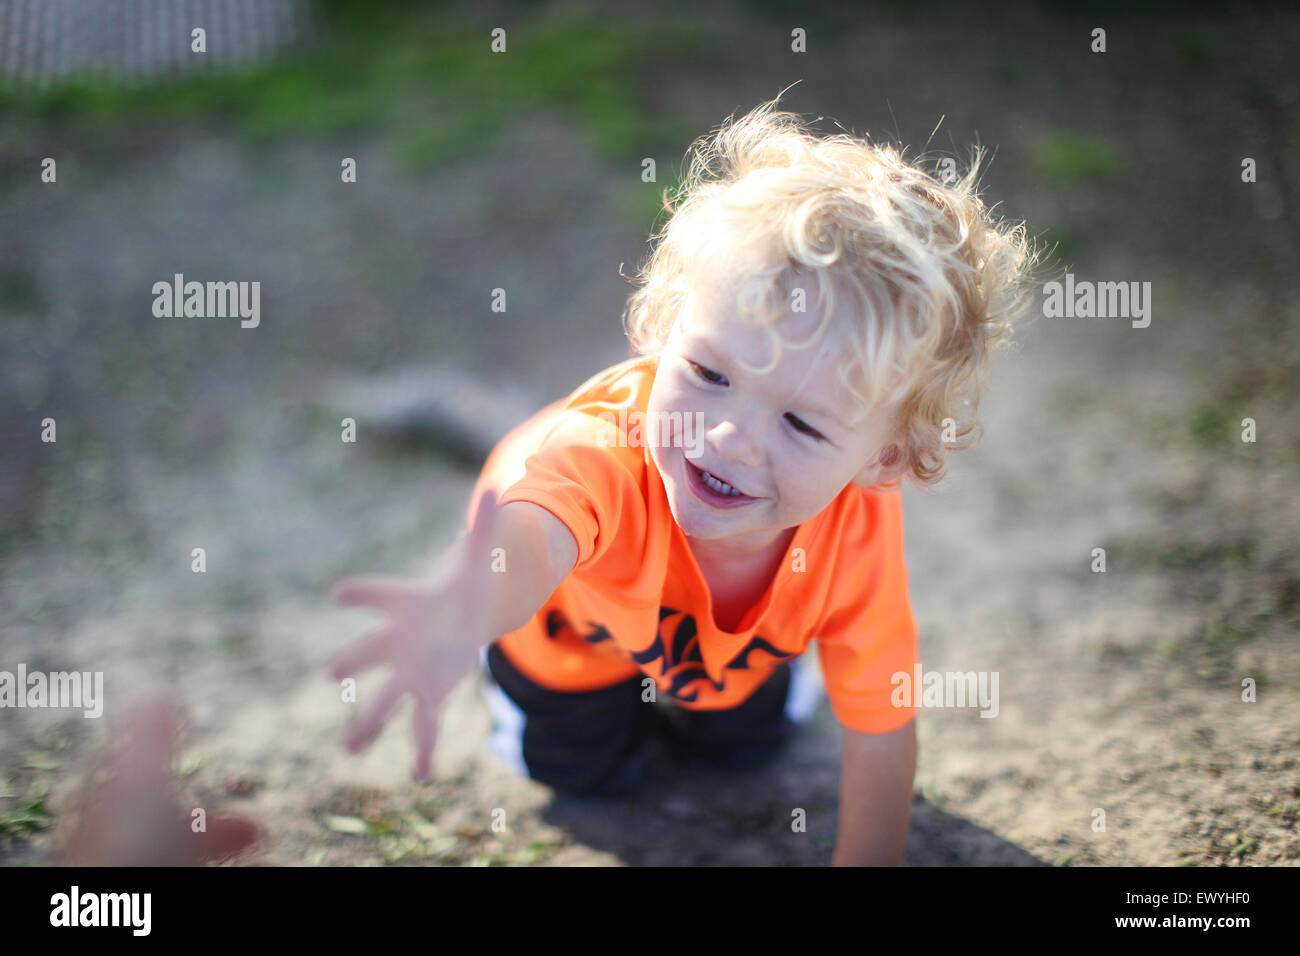 Smiling boy on all fours reaching for a hand - Stock Image